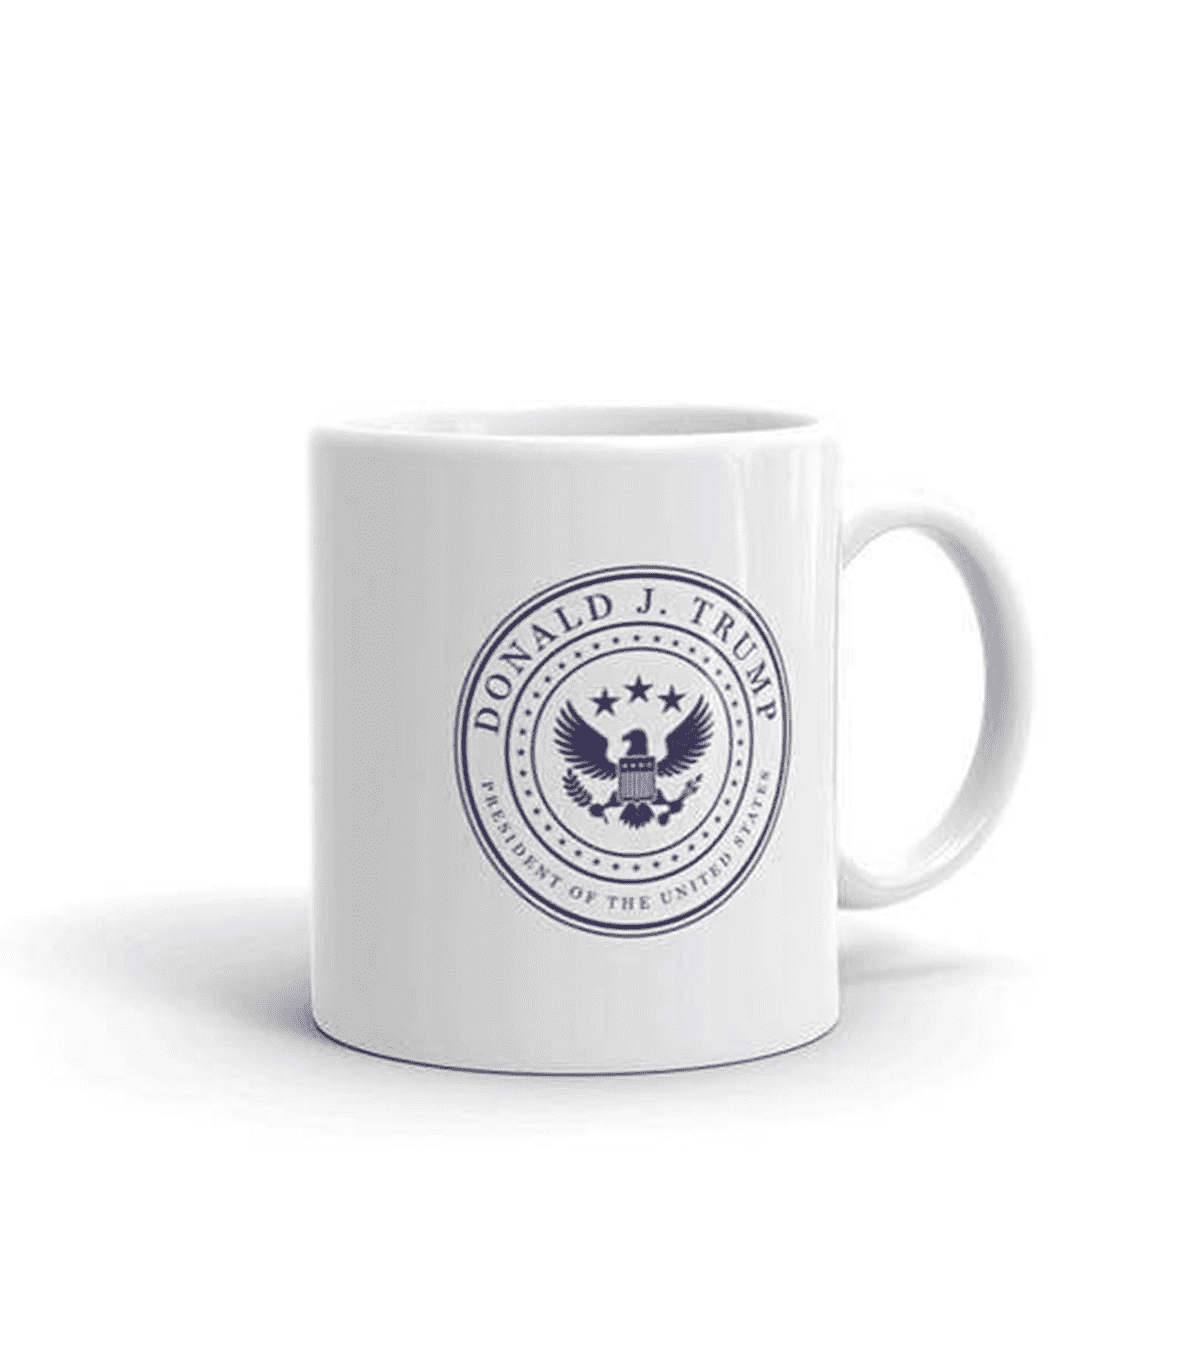 White & Navy Presidential Coffee Mug